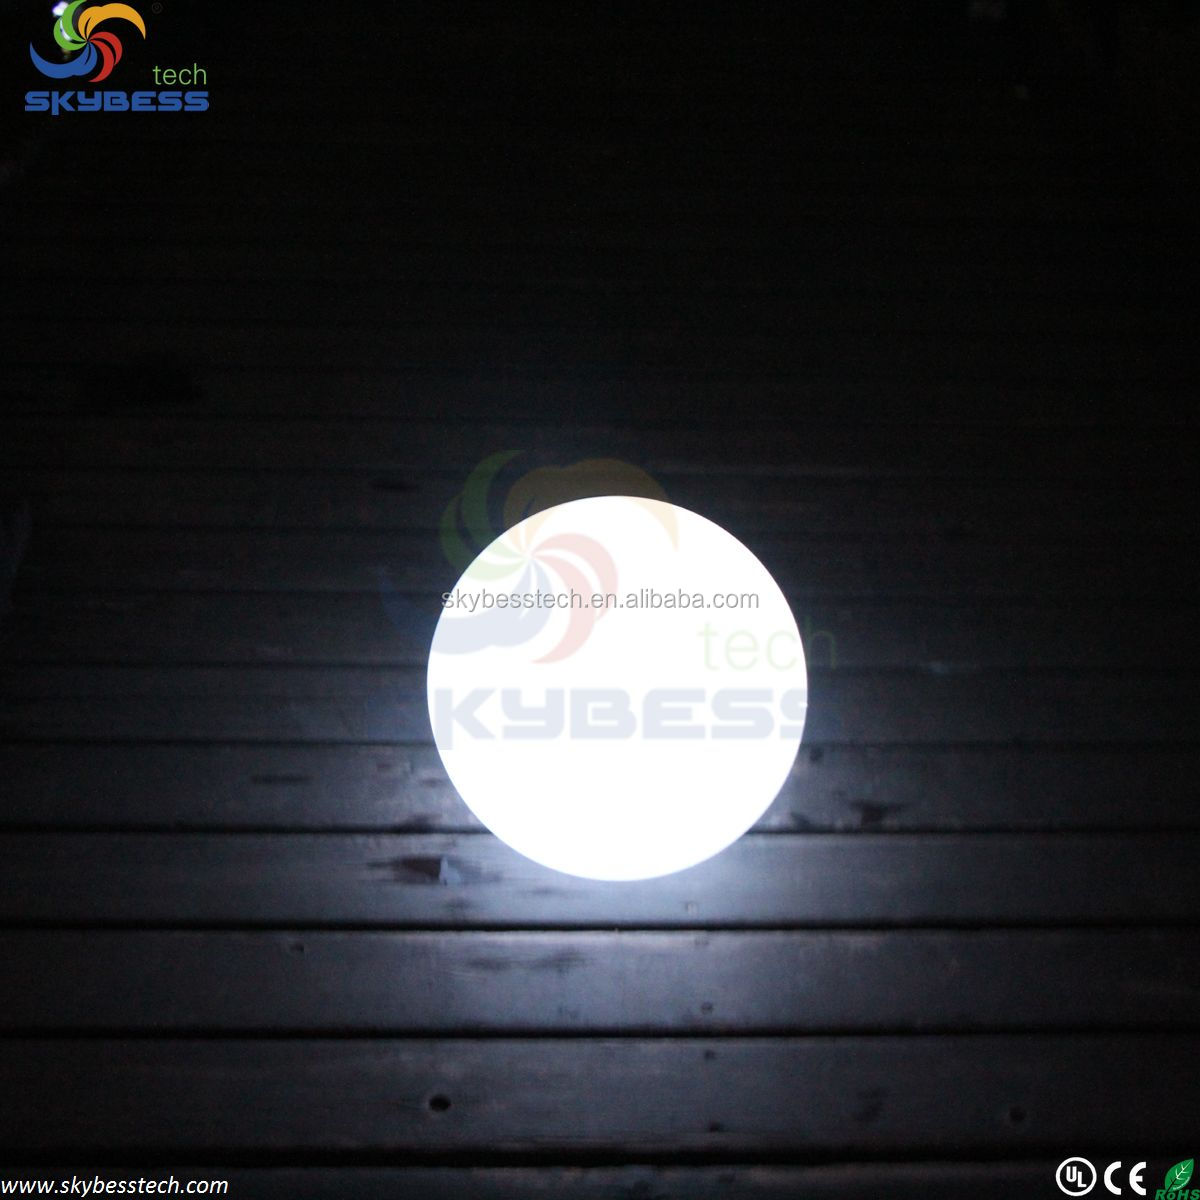 sphere led orbs with remote control buy led orbs led sphere led ball